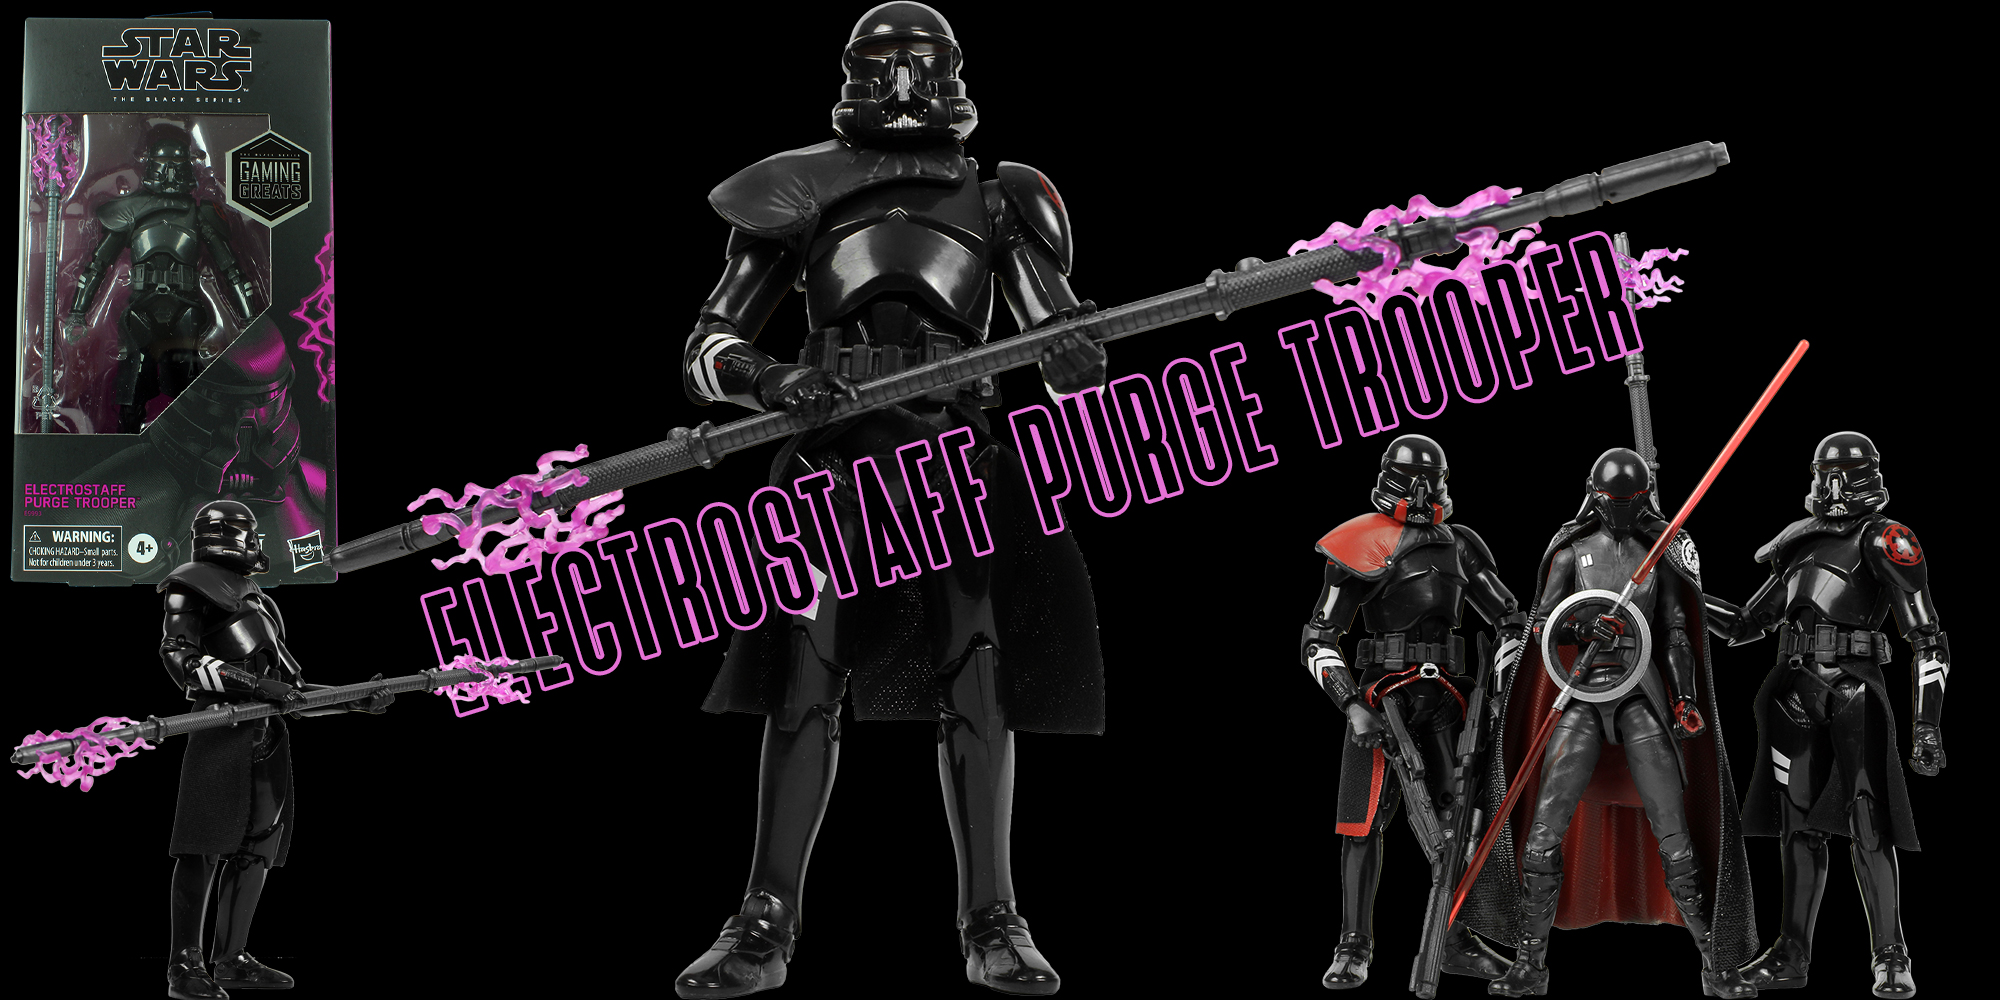 Black Series Electrostaff Purge Trooper